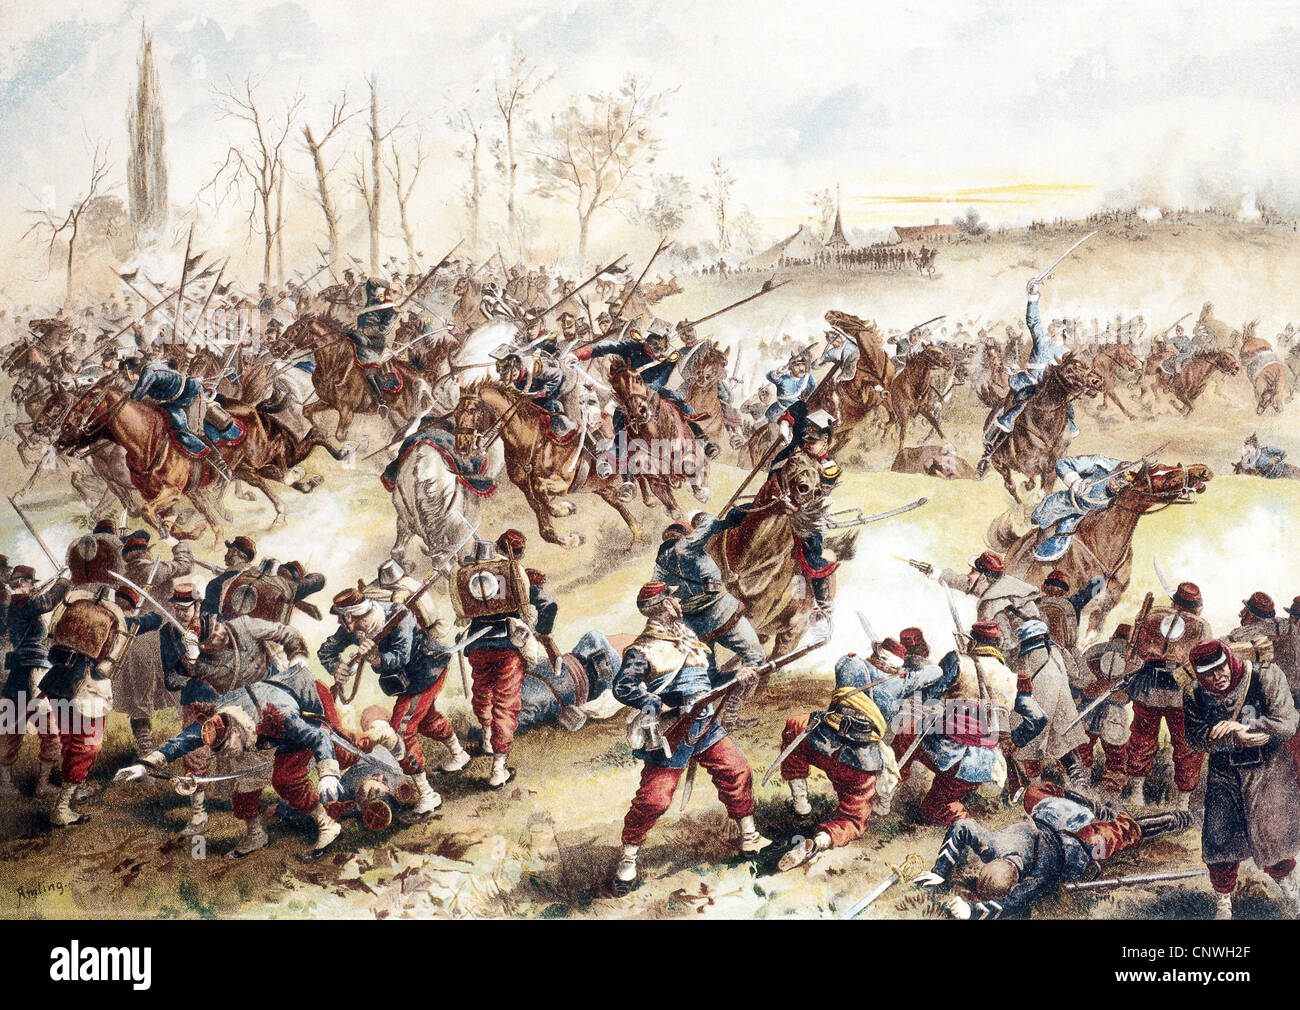 events, Franco-Prussia War 1870 - 1871, Battle of Saint-Quentin, 19.1.1871, charge of Prussian cavalry, chromolithograph - Stock Image